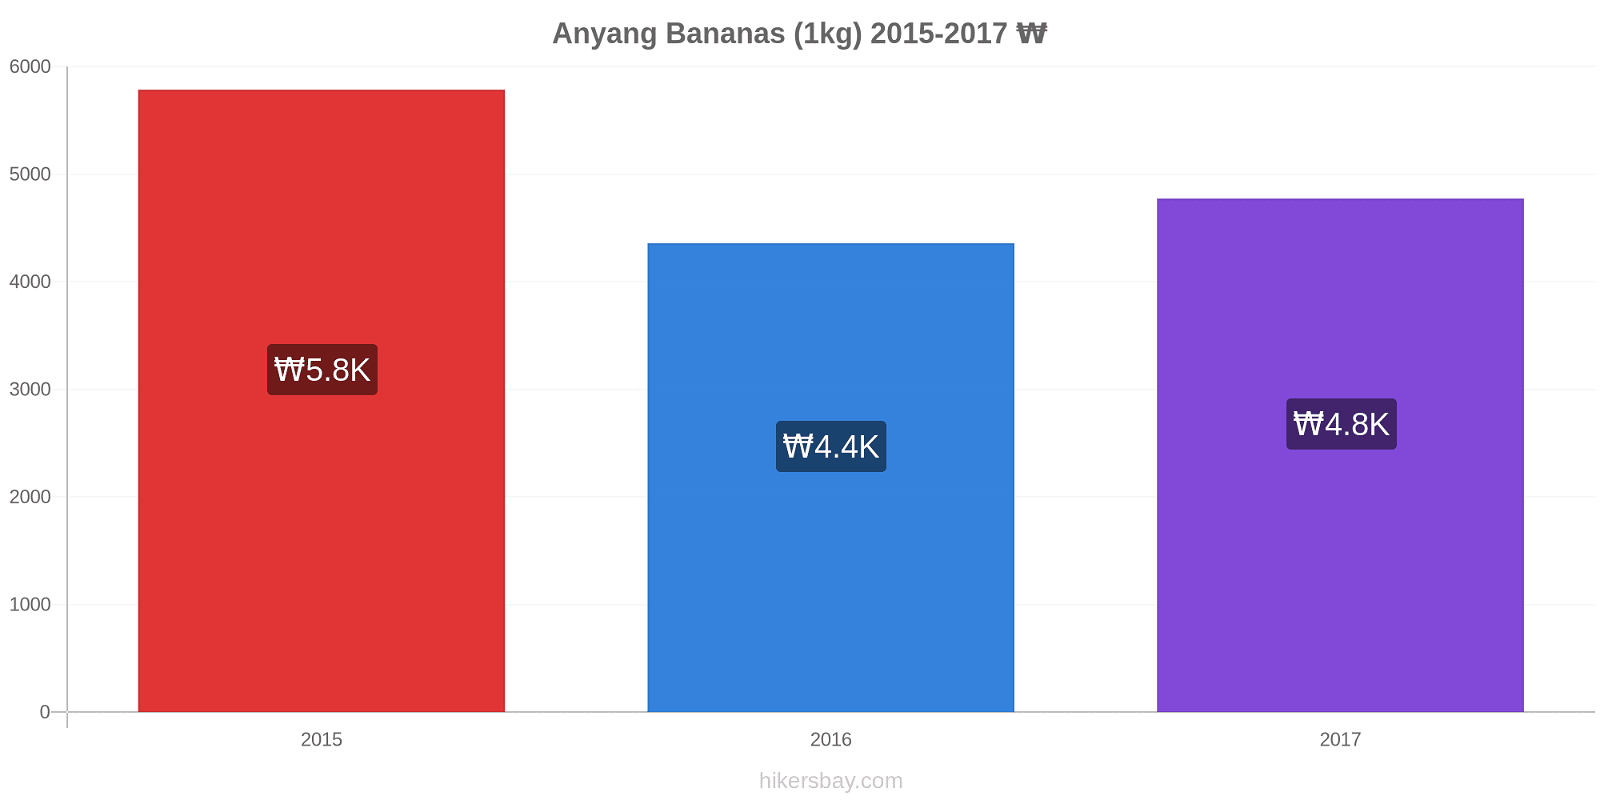 Anyang price changes Bananas (1kg) hikersbay.com